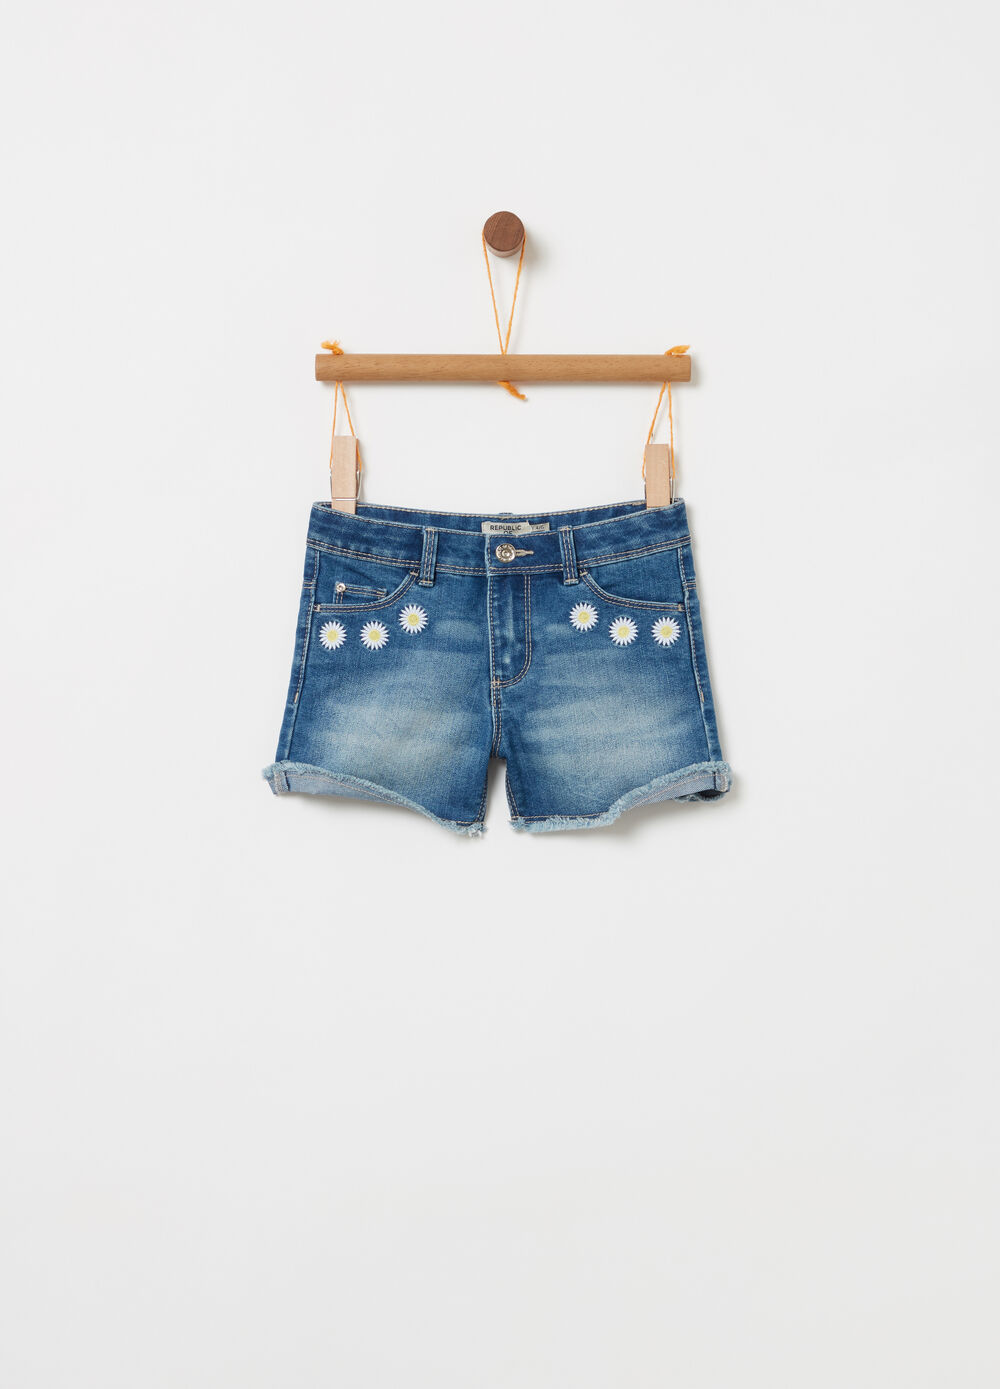 Washed denim shorts with daisies